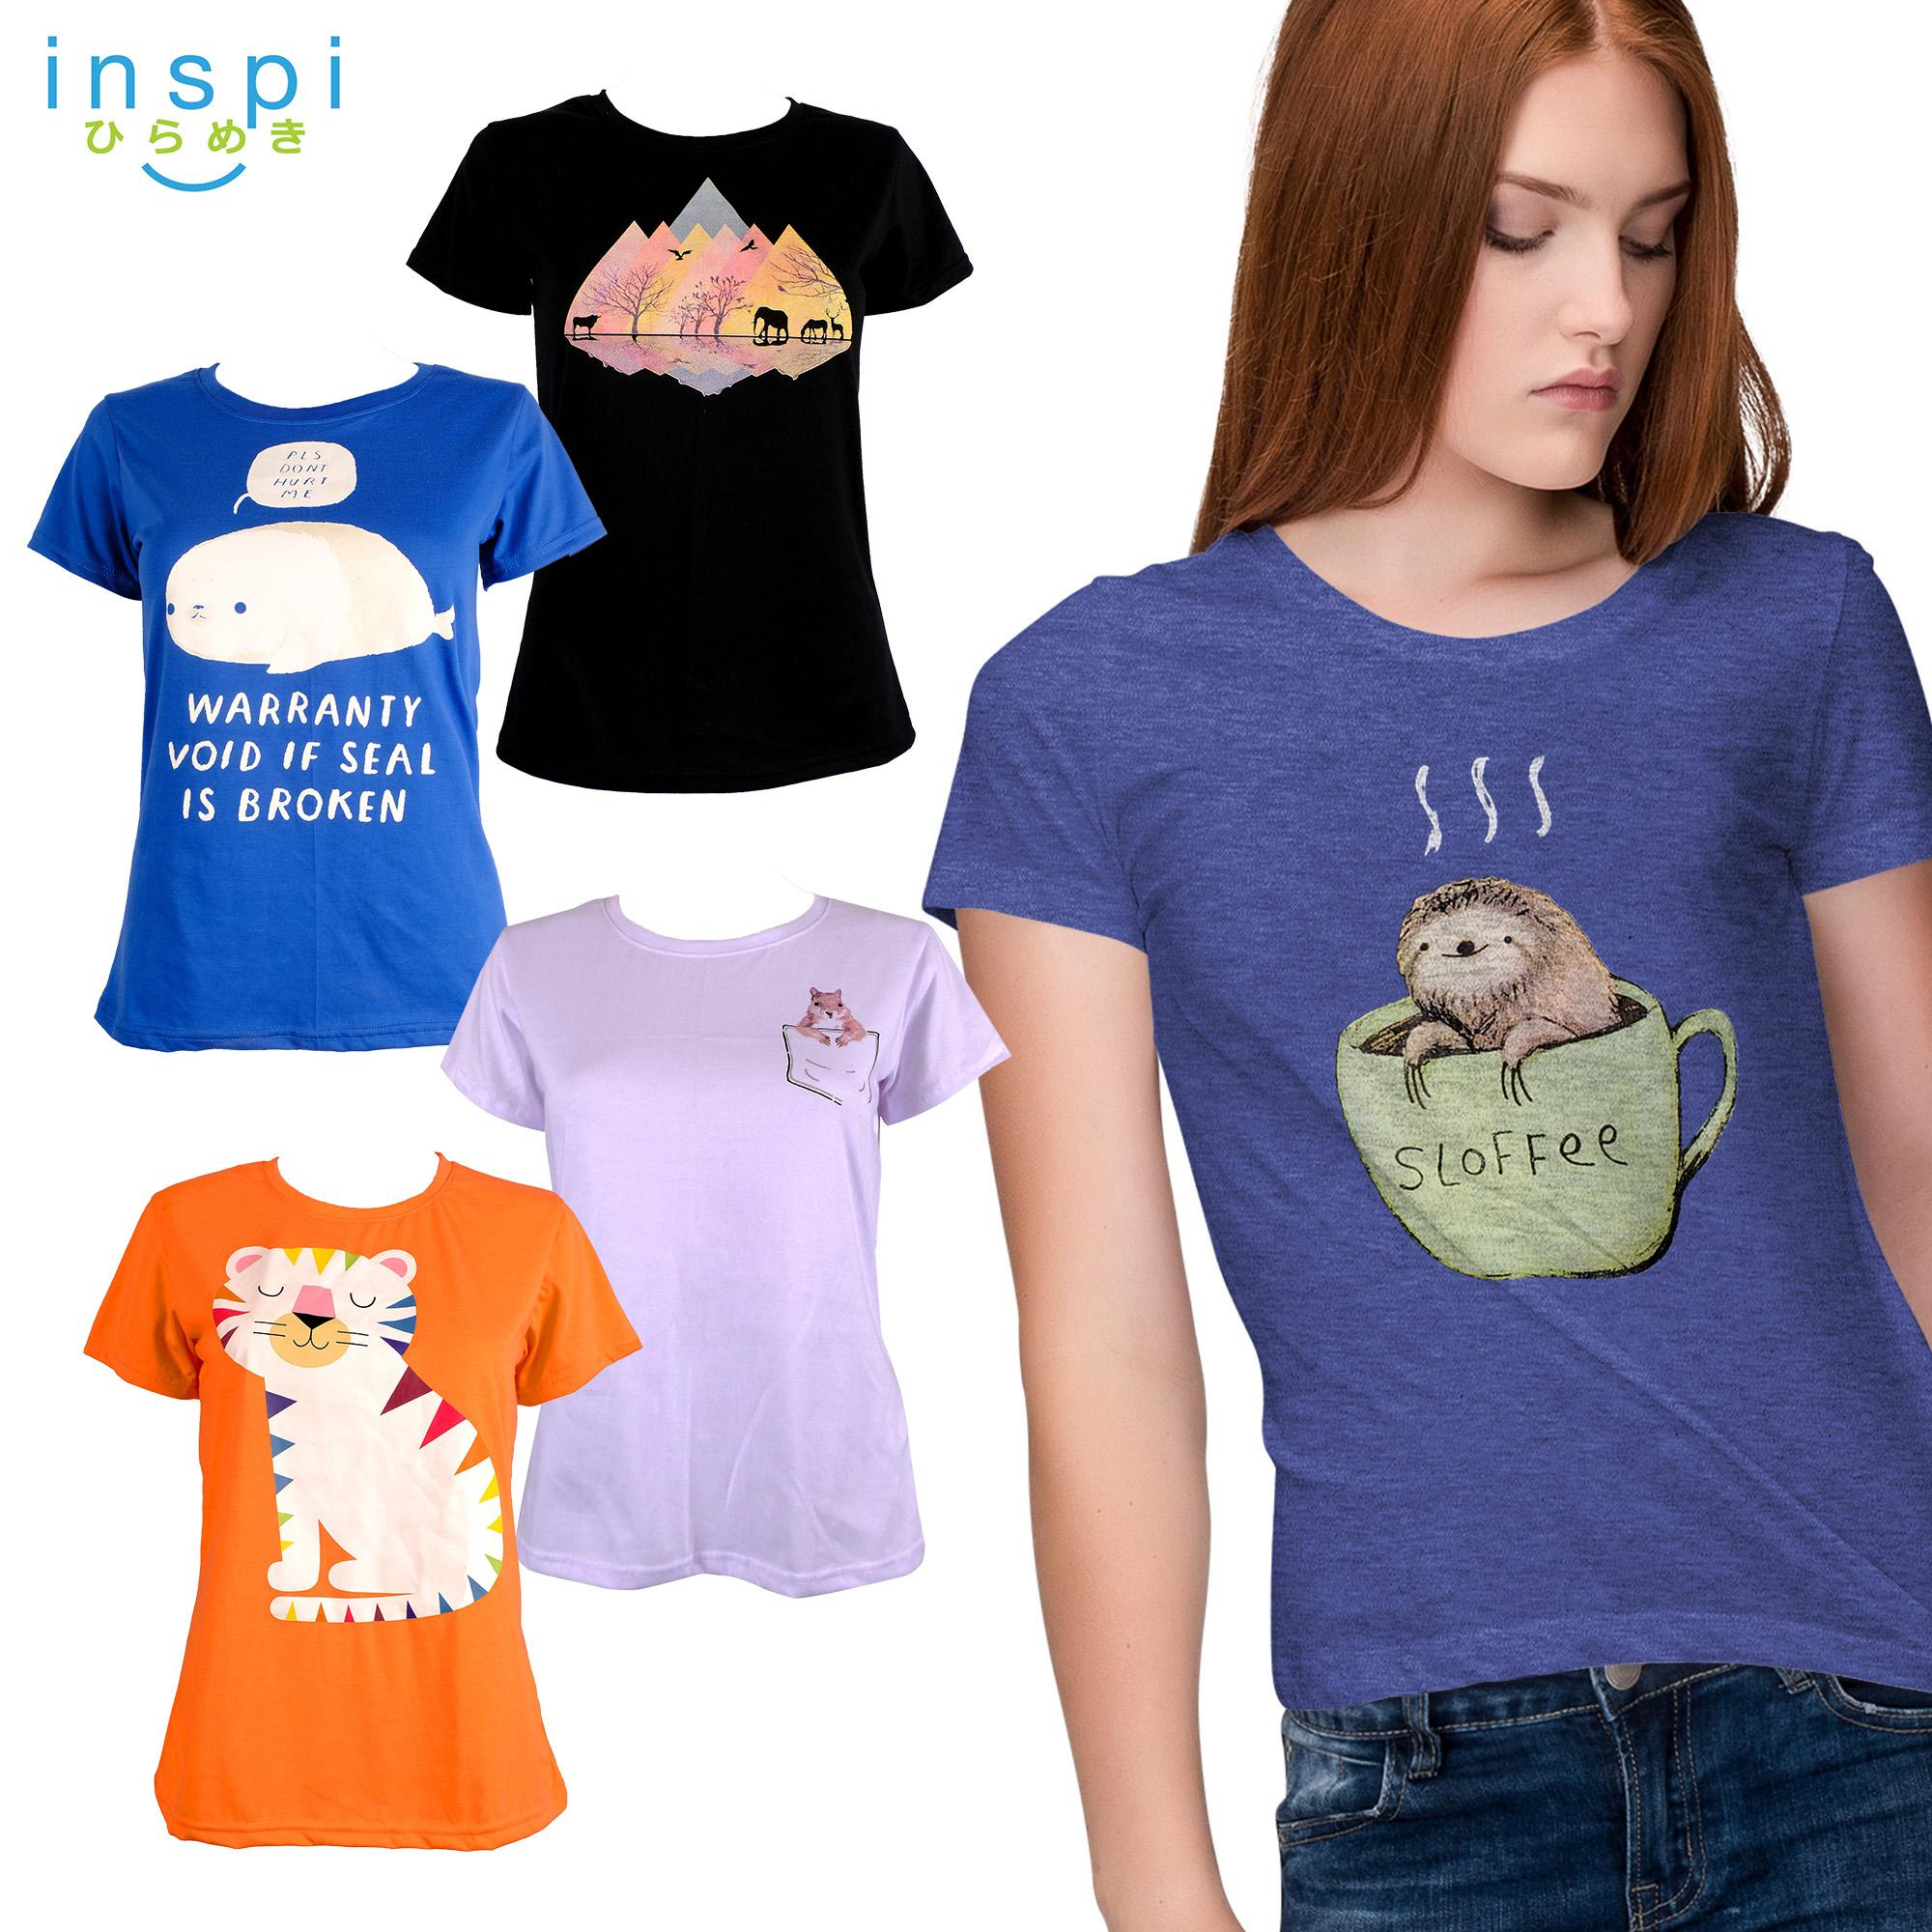 037fc21b66e96 INSPI Tees Ladies Pet Collection tshirt printed graphic tee Ladies t shirt  shirts women tshirts for